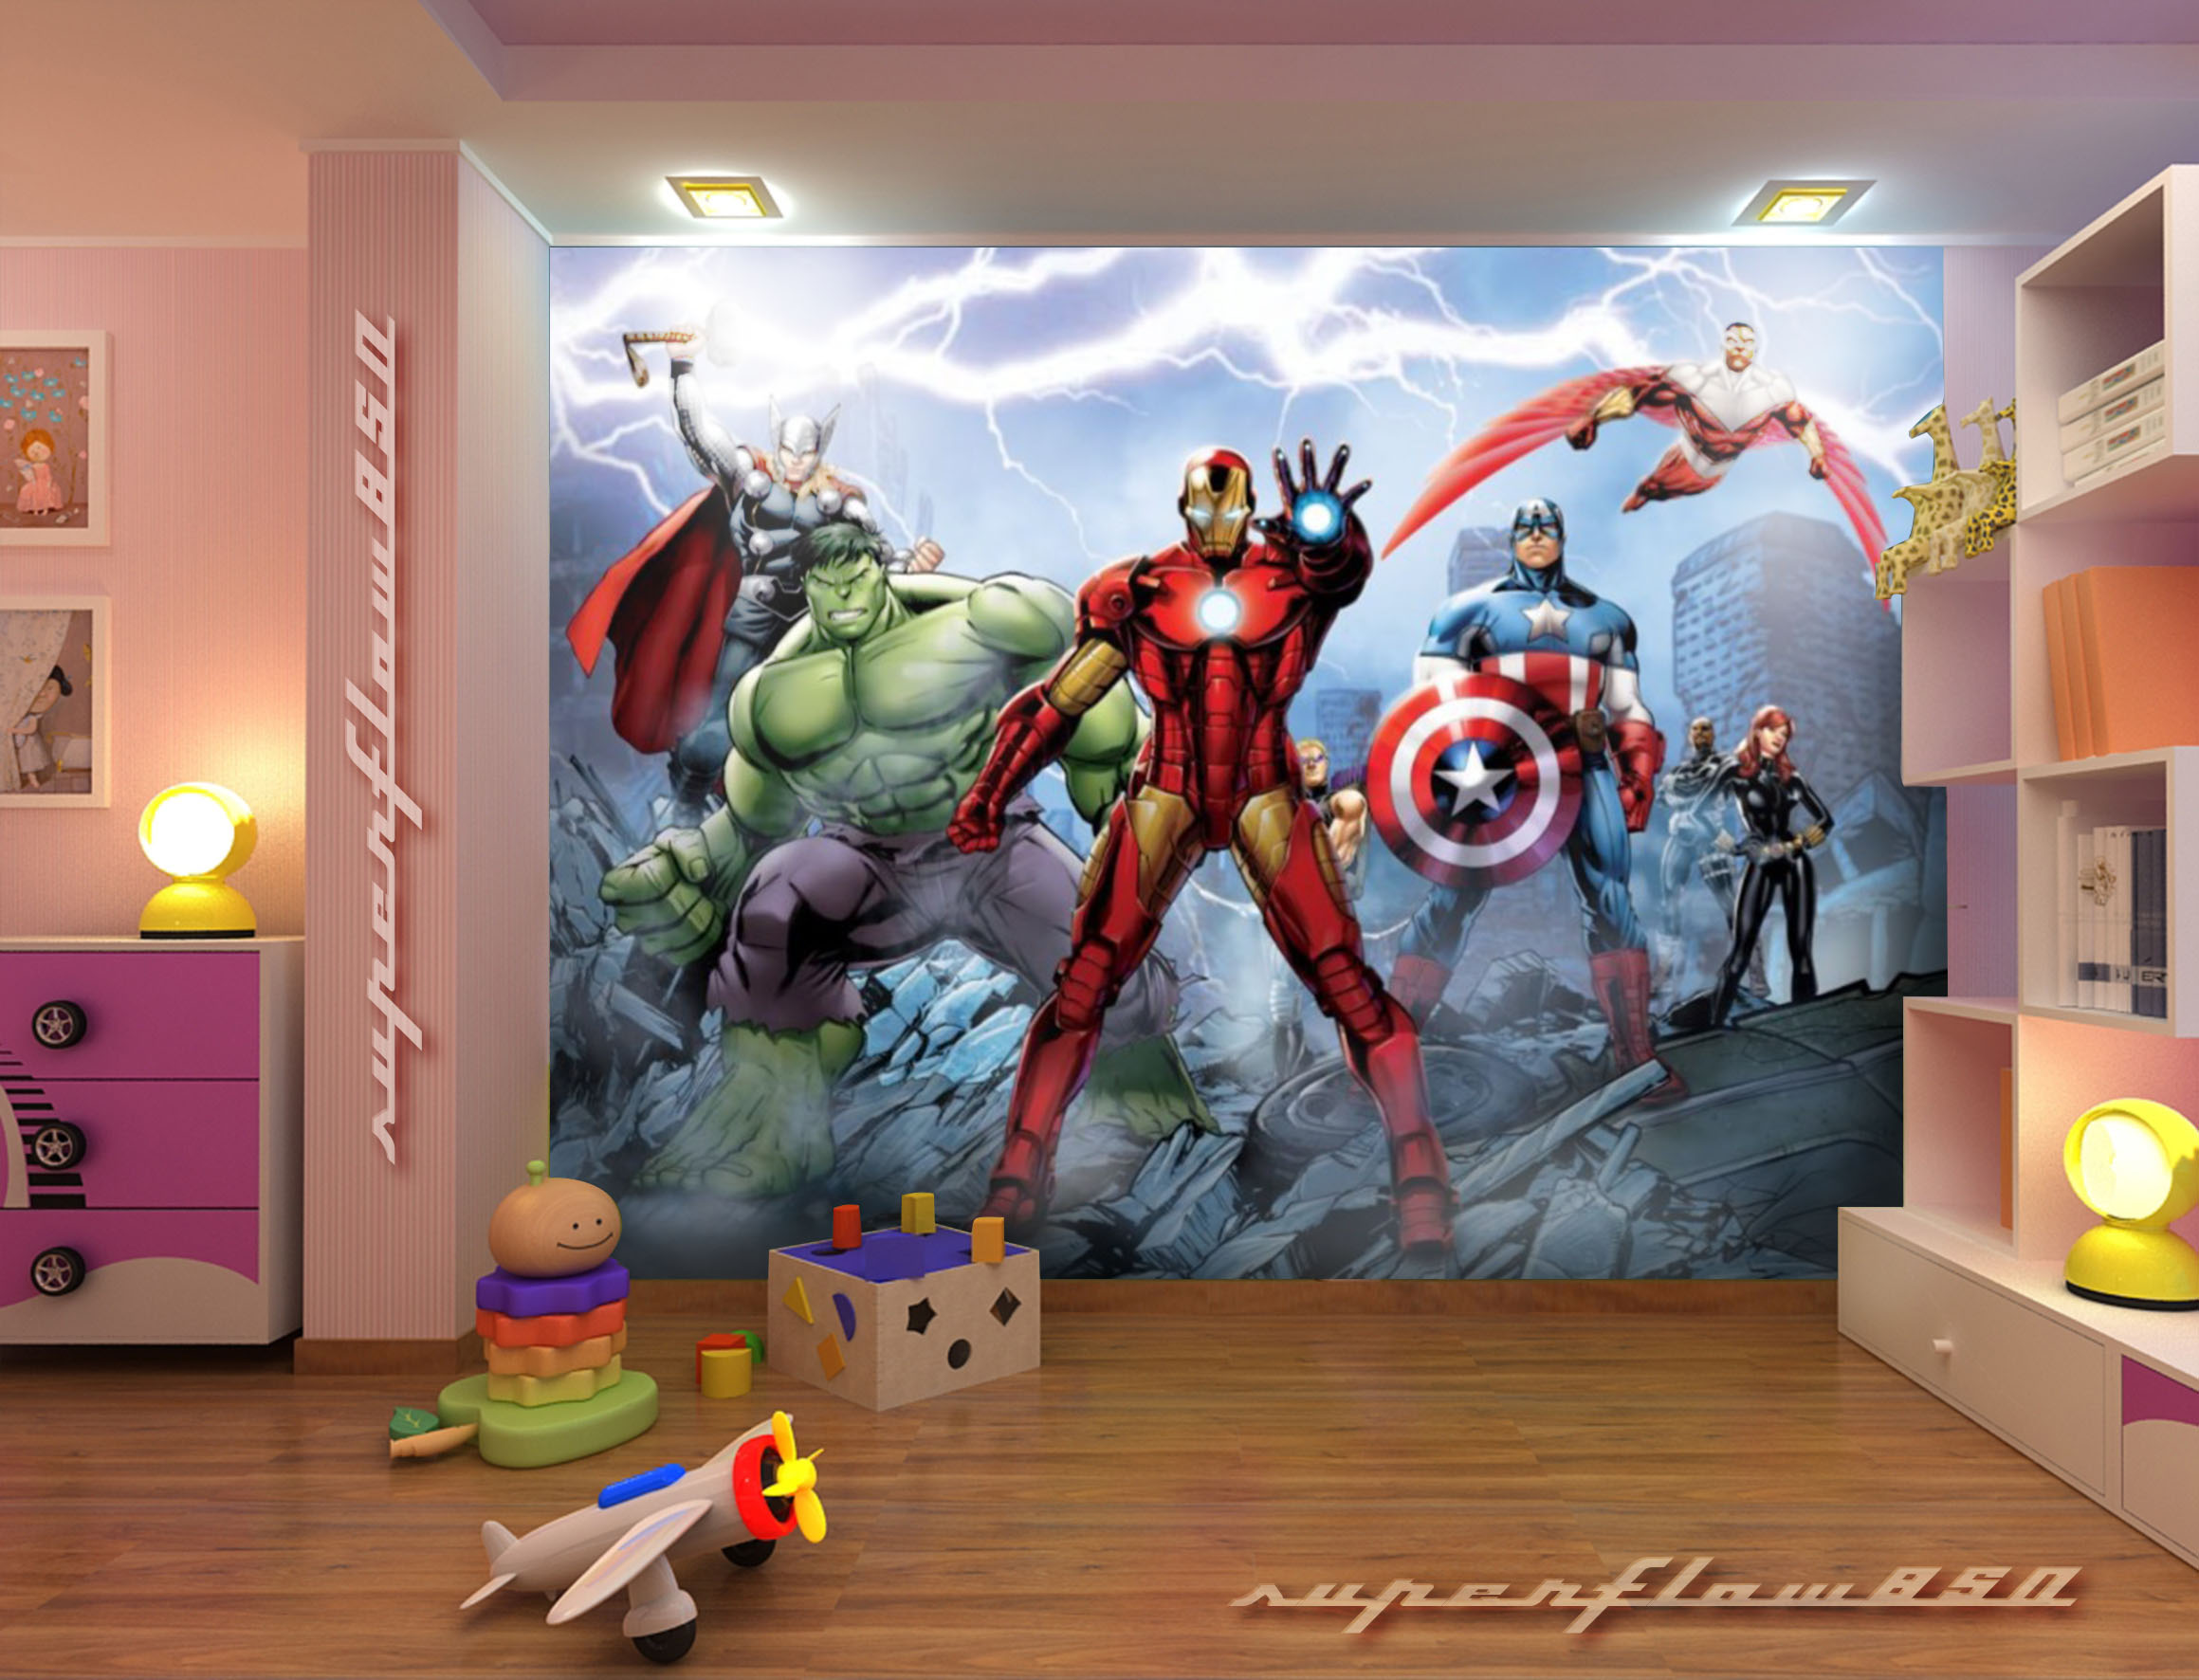 Marvel avengers kids photo wallpaper wall mural 2230 xxl for Avengers wall mural uk